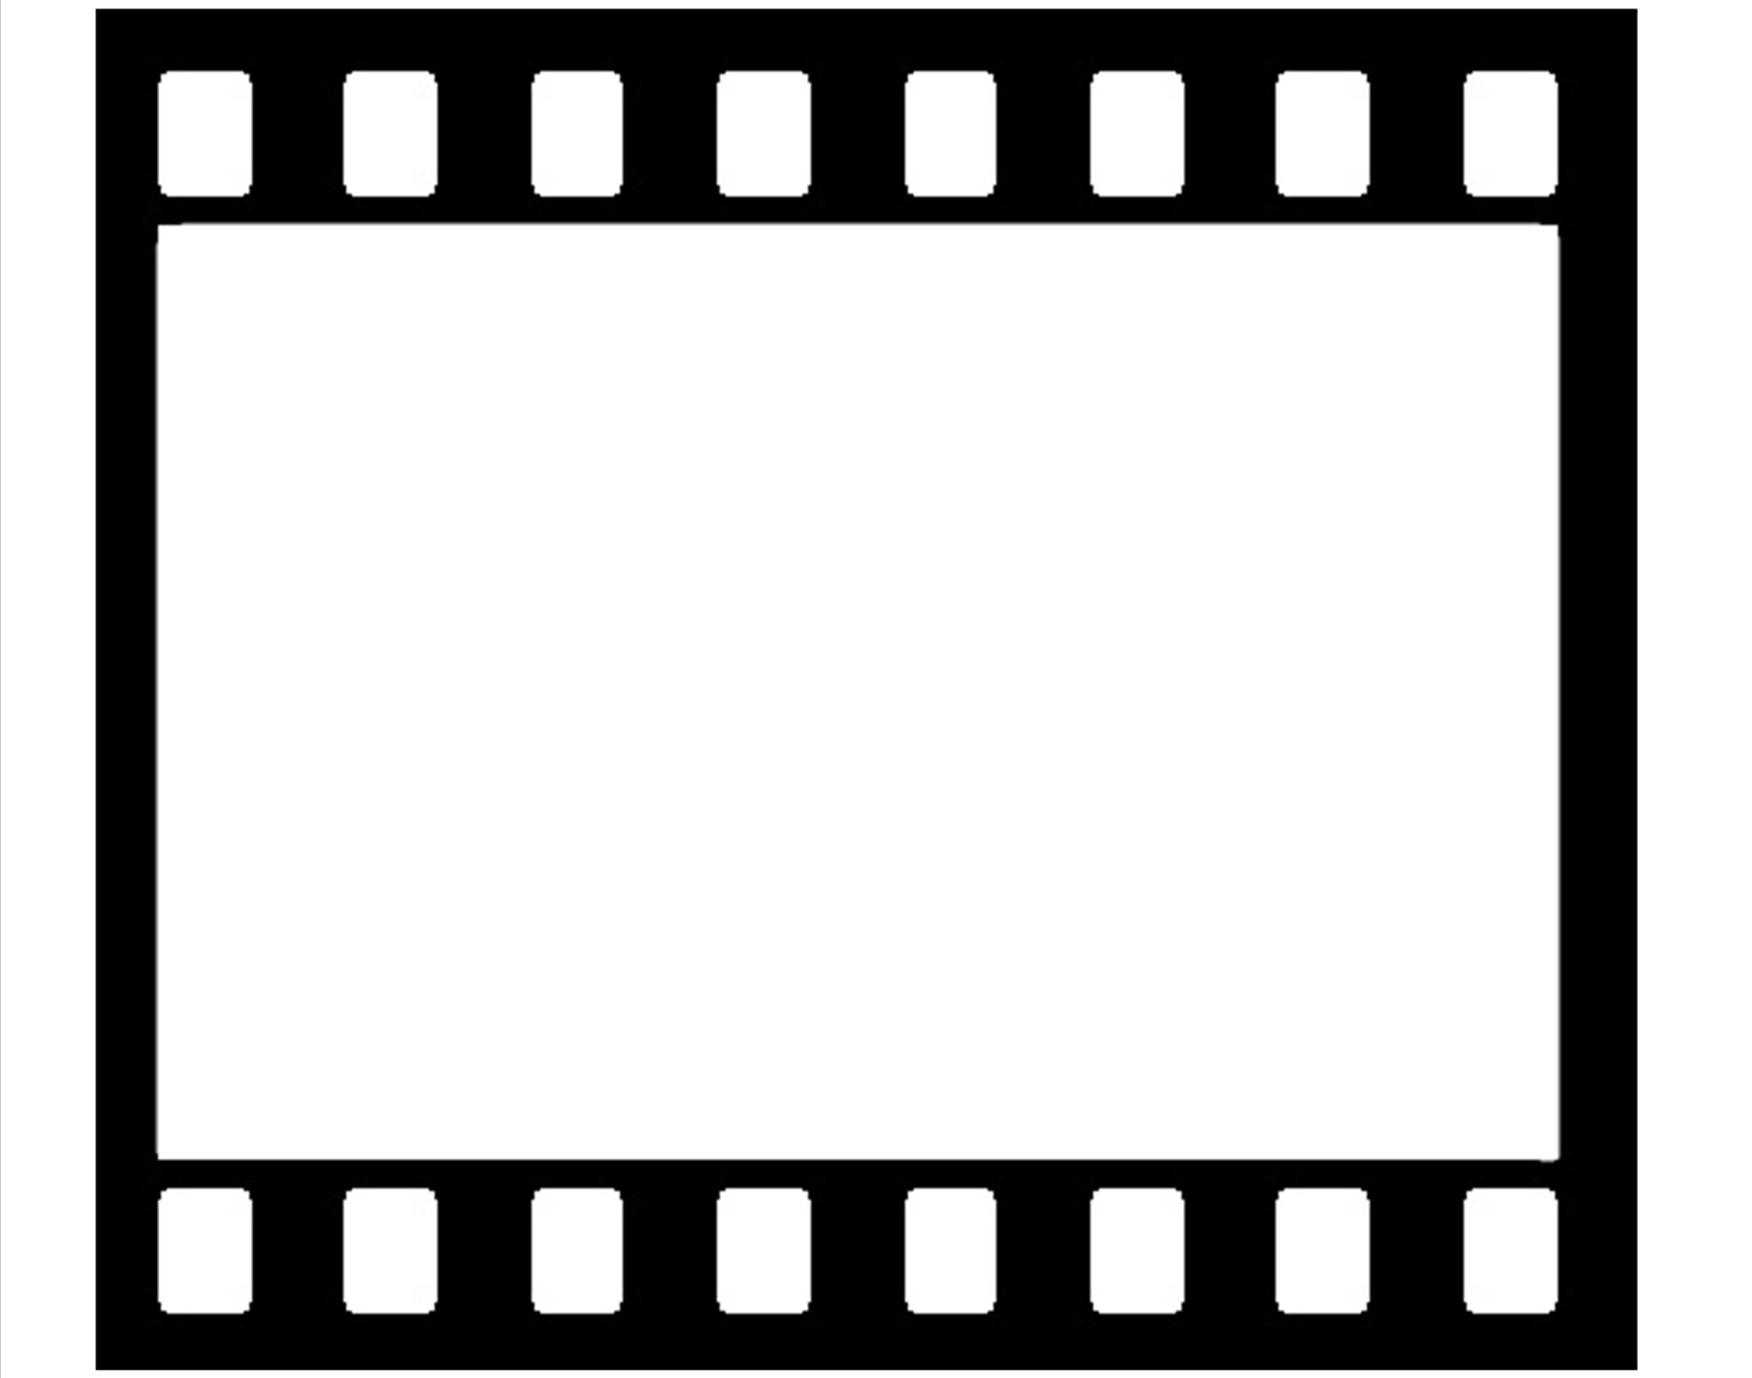 Movie reel vector clipart clipart suggest for Film strip picture template